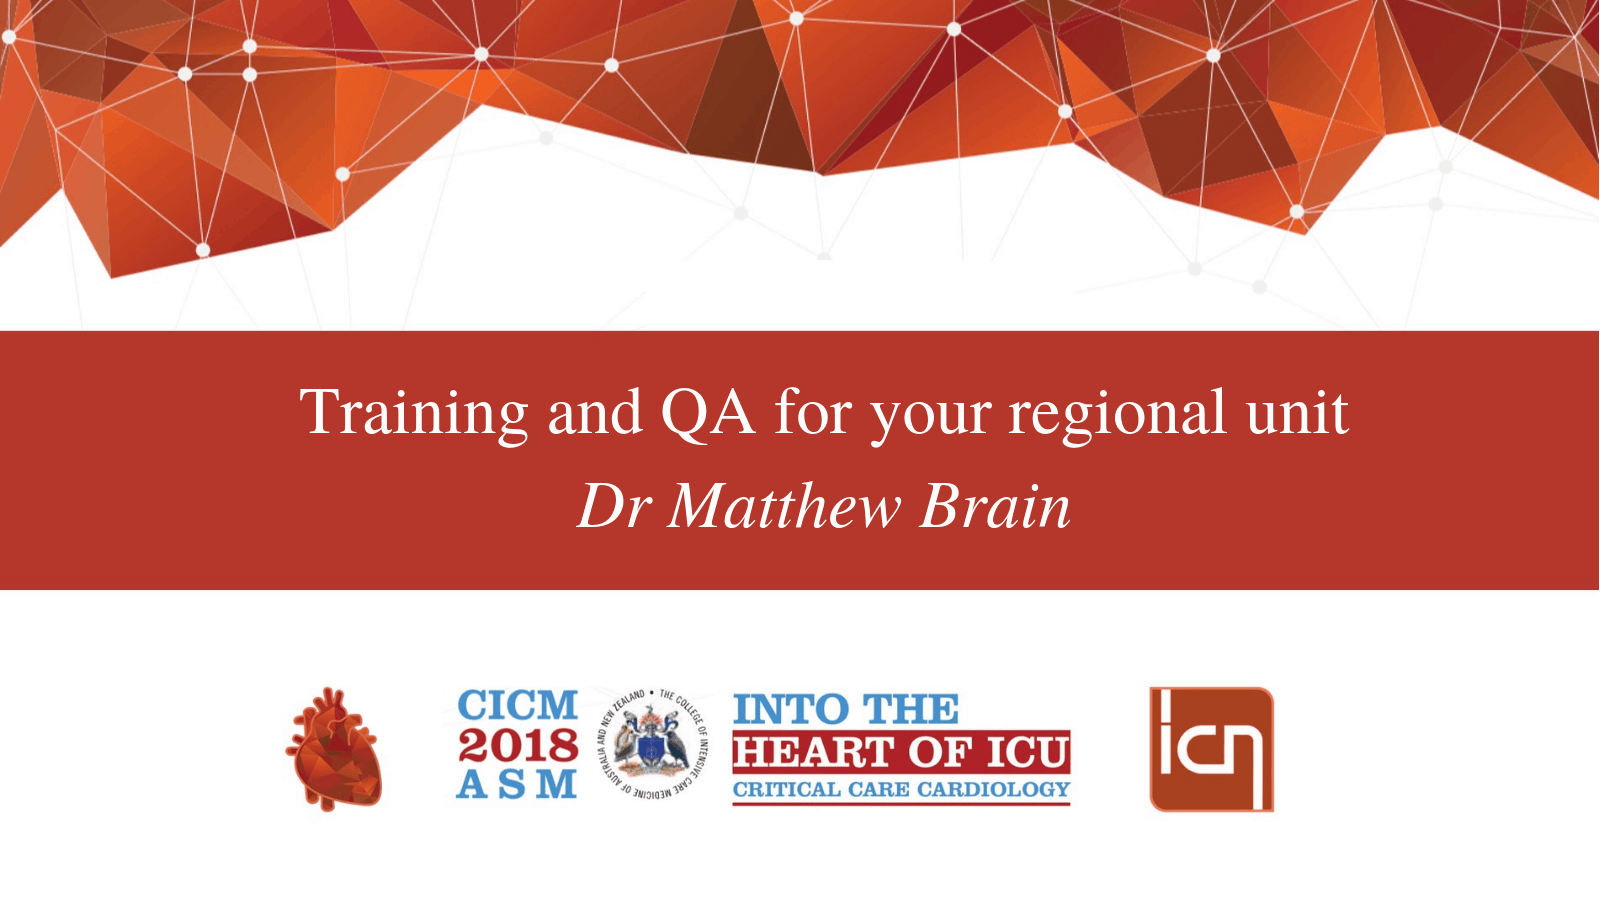 Training and QA for your regional unit.